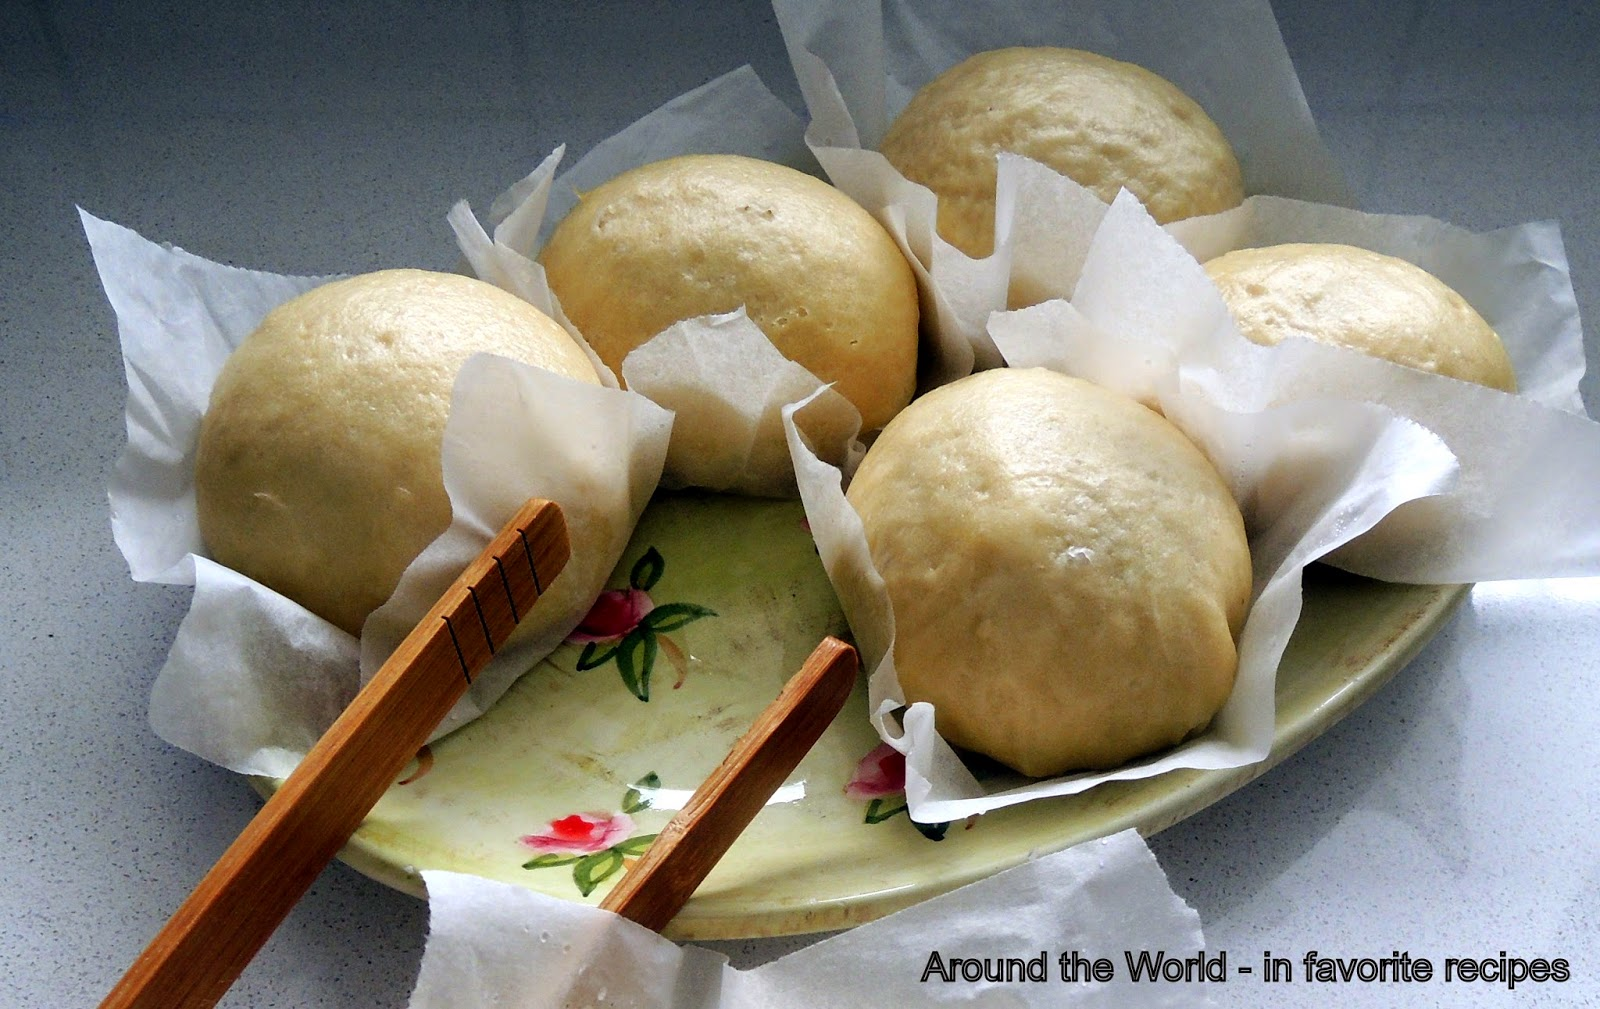 Around the World - in favorite recipes: Steamed Pork Buns ...